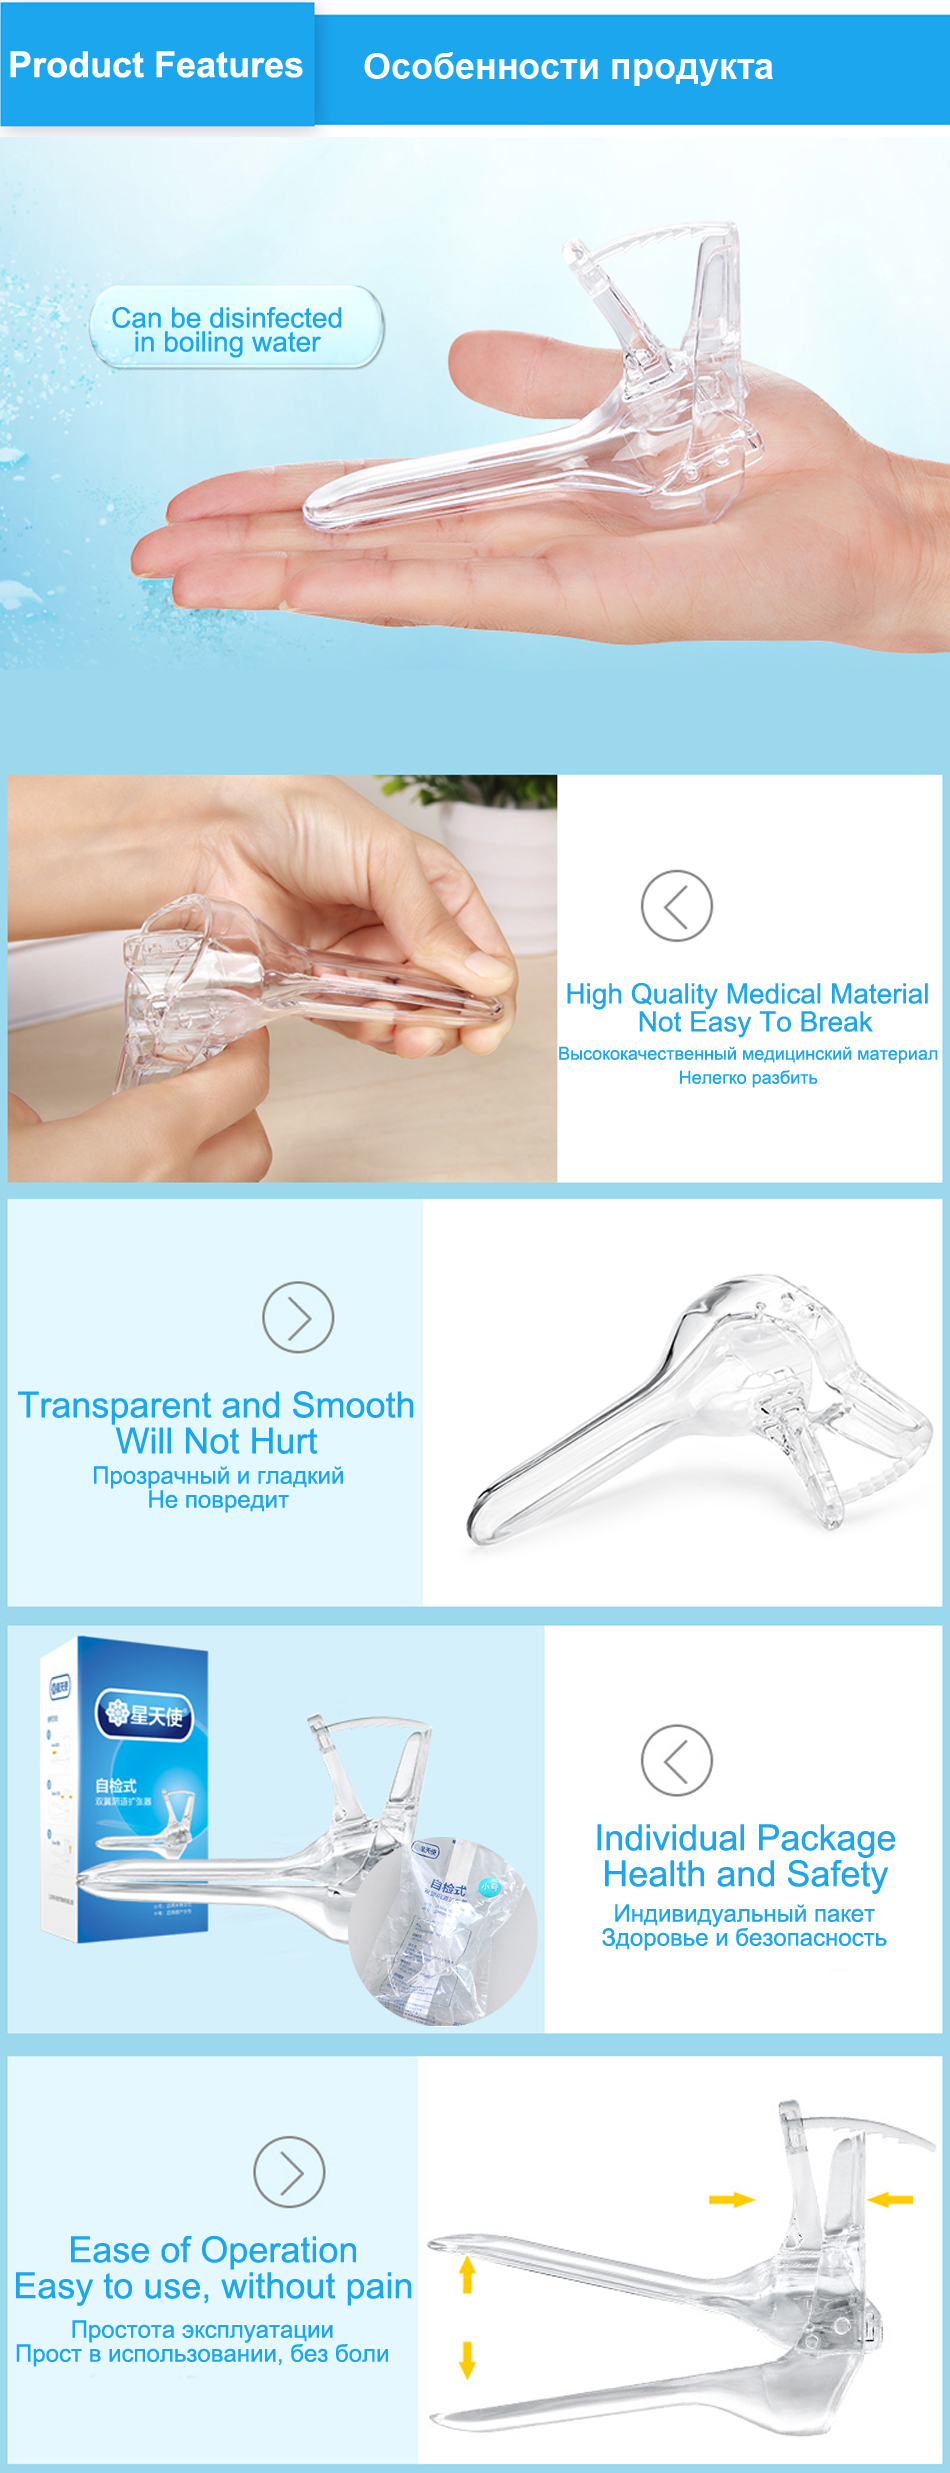 Anal Hurt Tube vagina tube speculum expander female vaginal hygiene anal dilator expand  anal dilation device vaginal speculum for woman